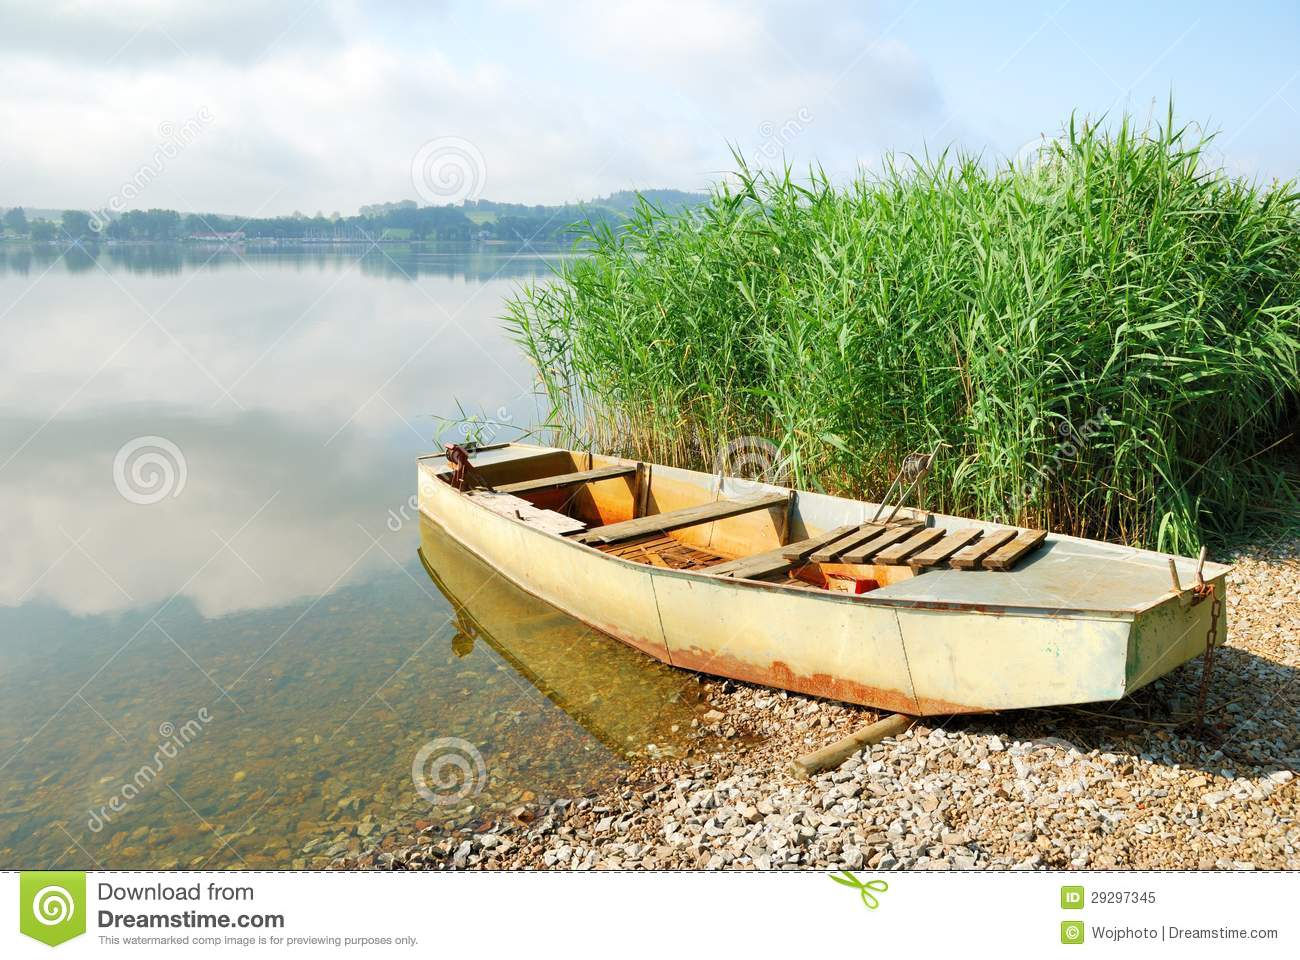 Old fishing boat royalty free stock photo image 29297345 for Old fishing boat